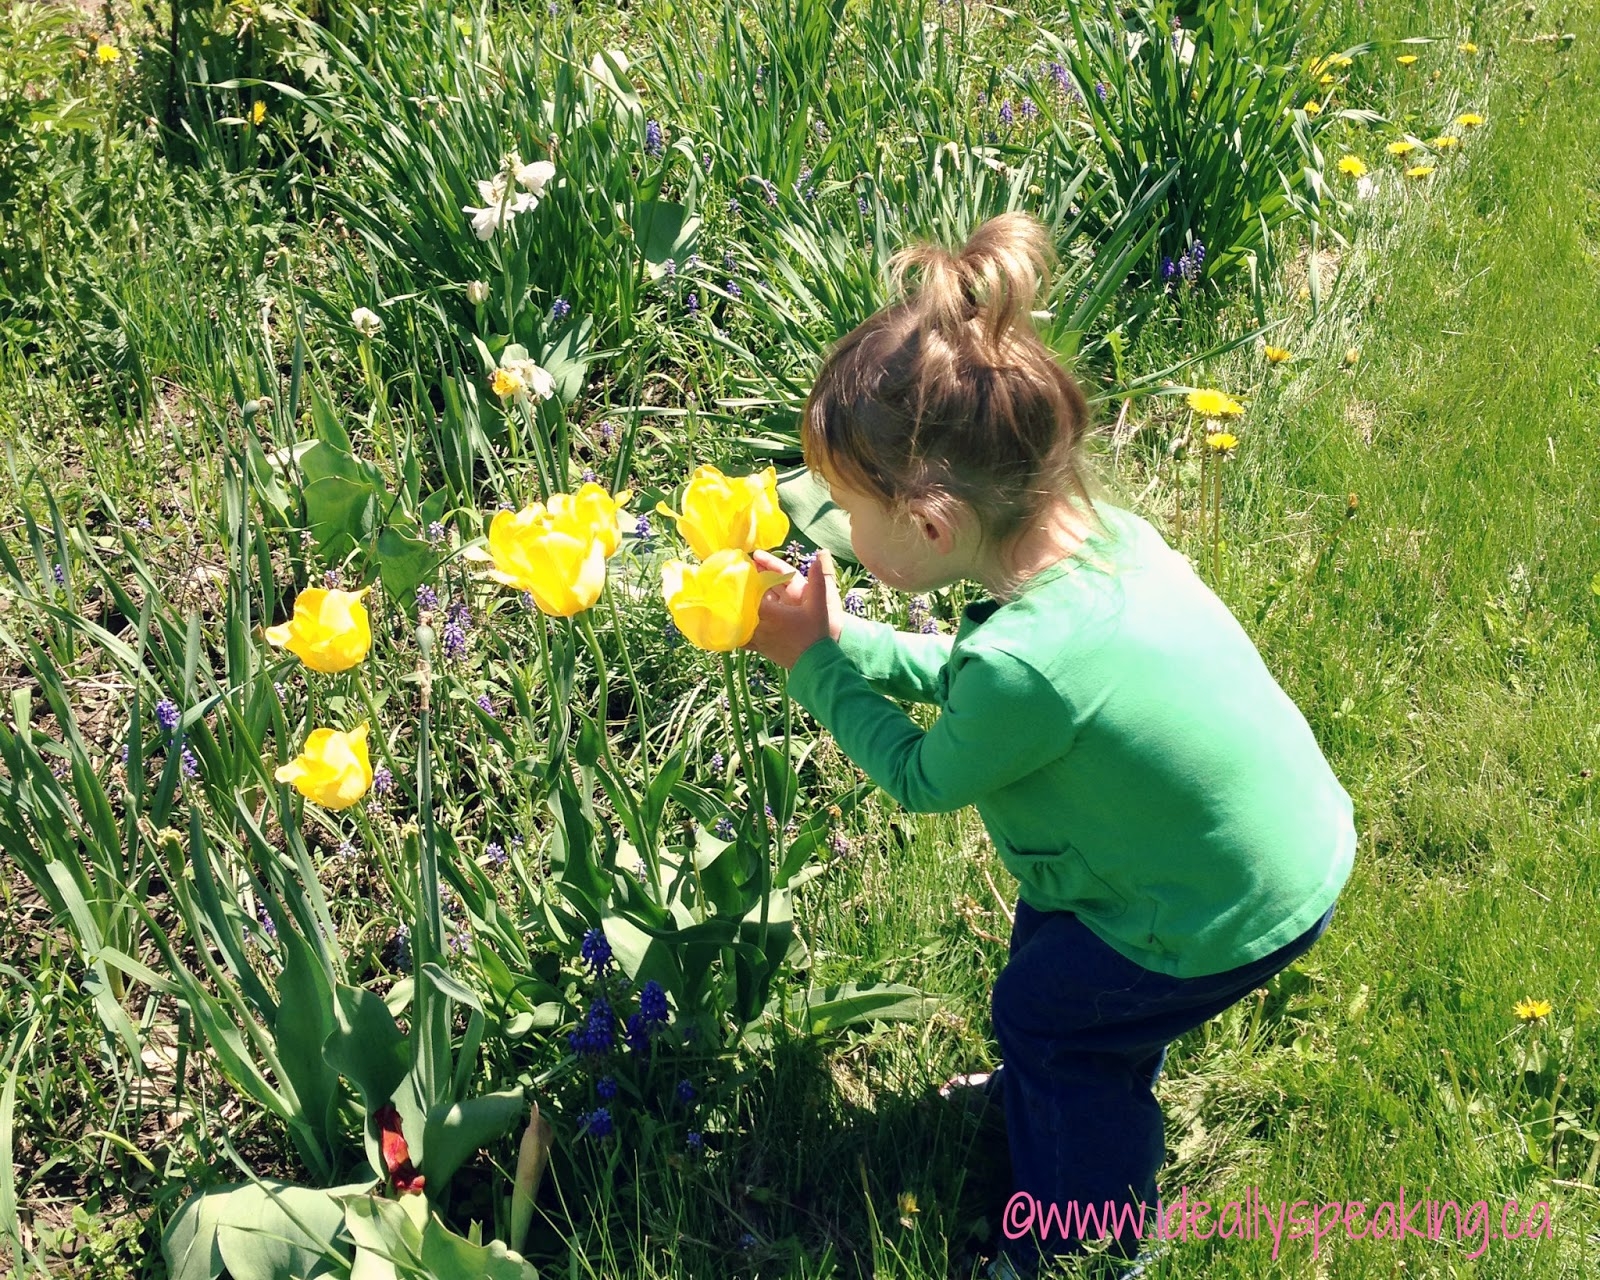 Toddler smelling flowers in the garden